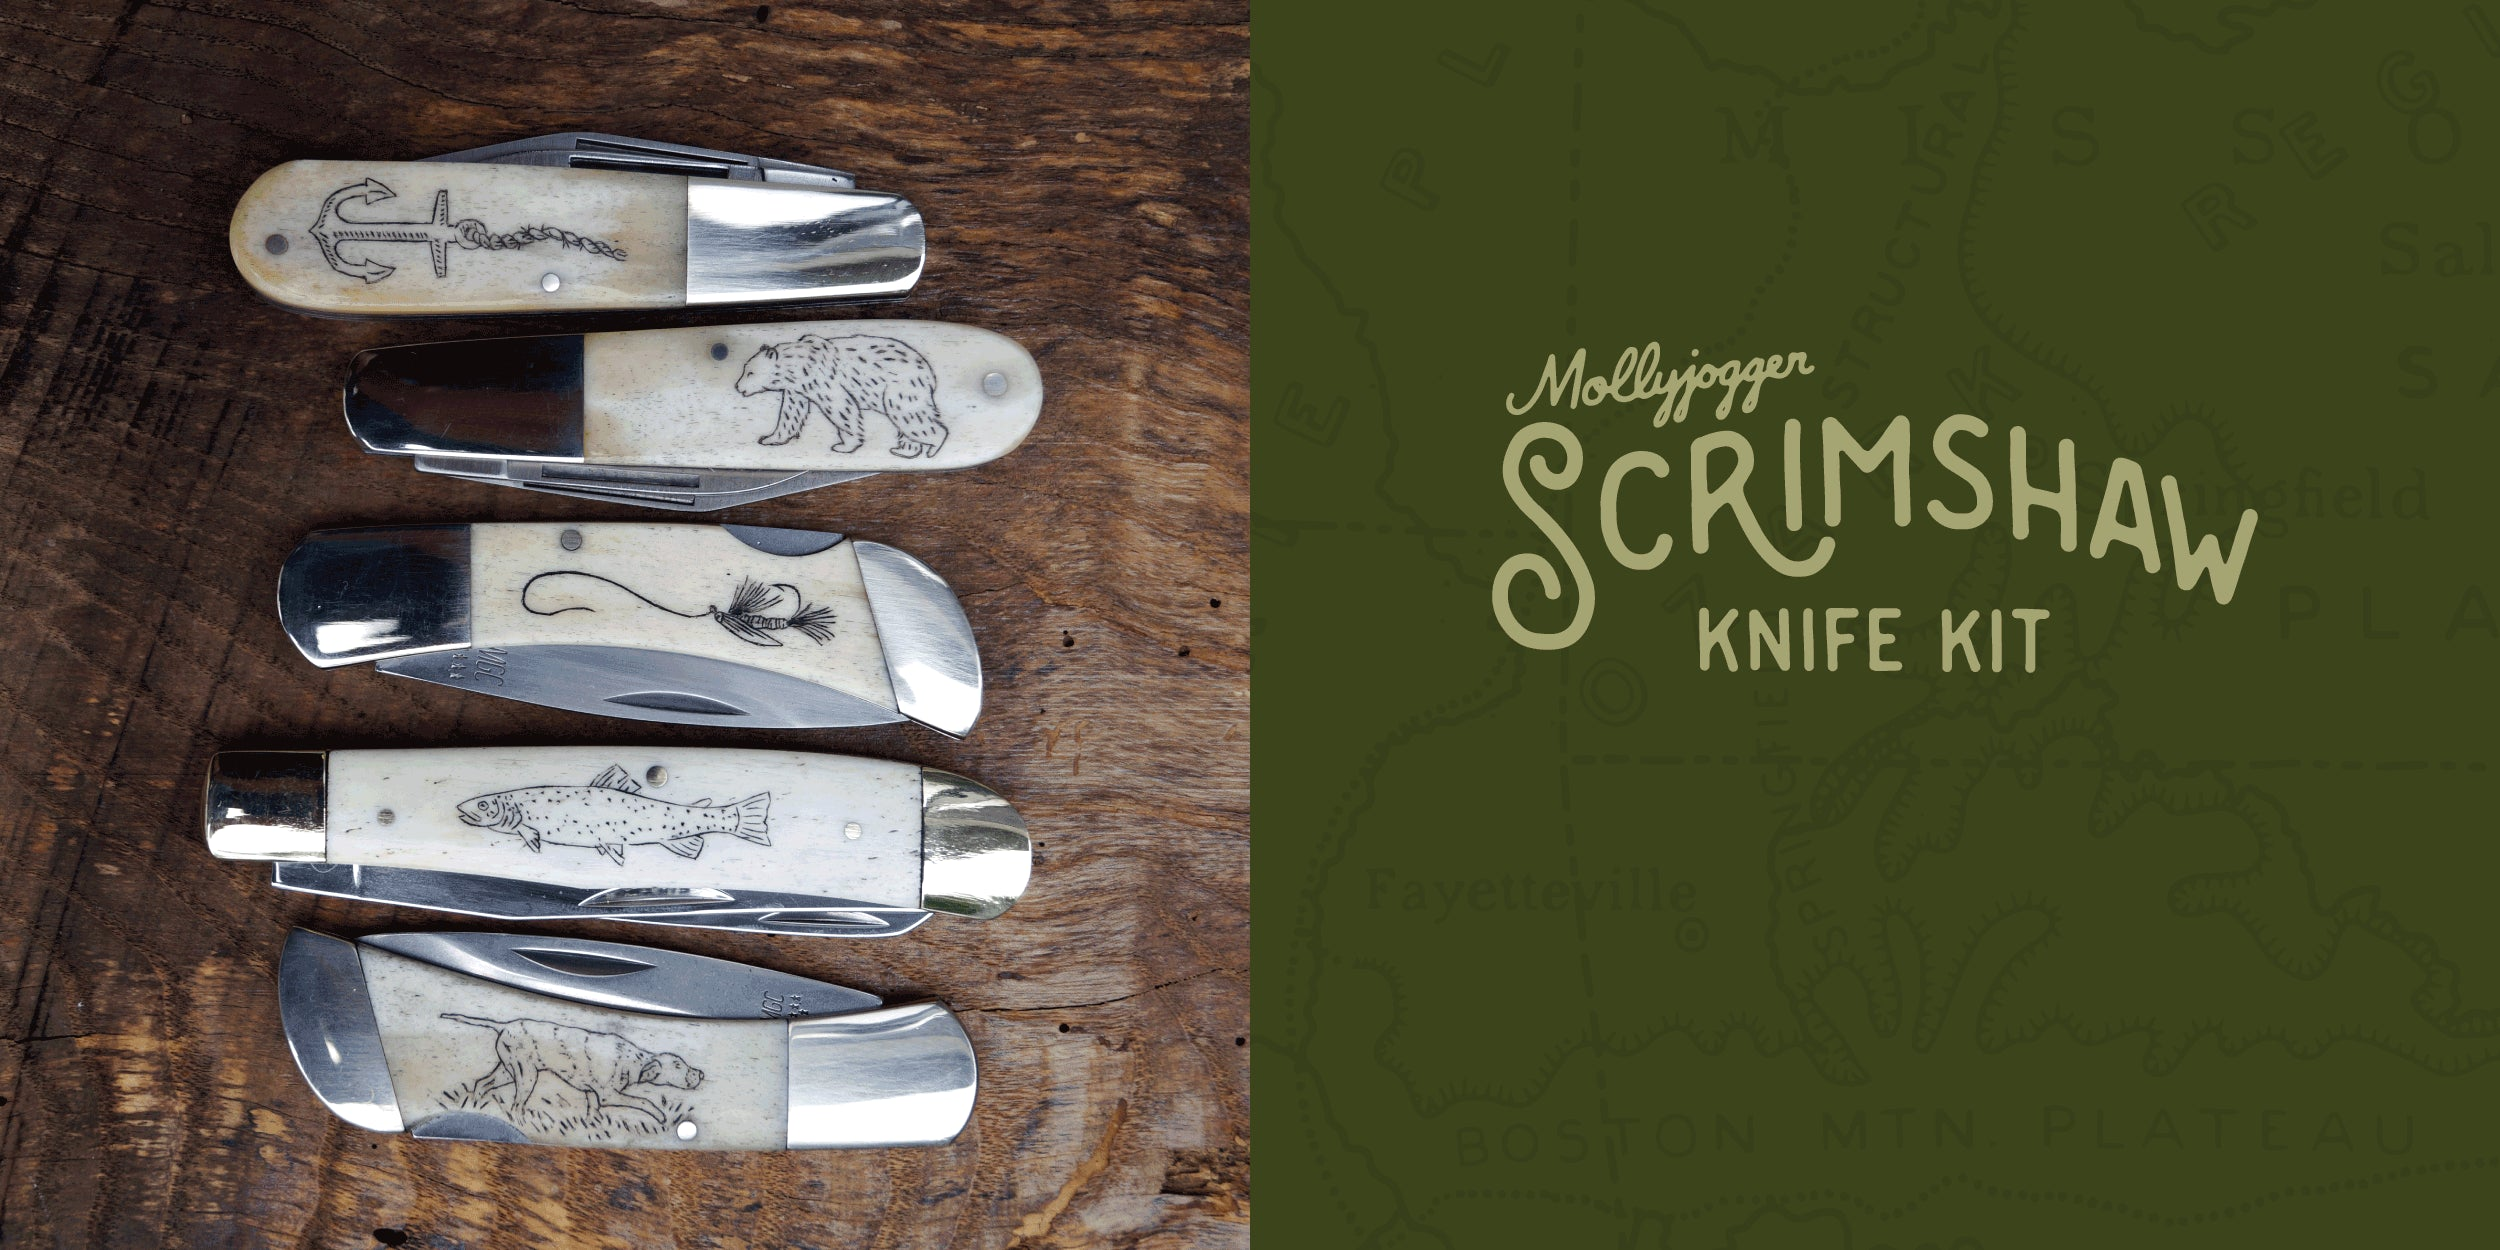 Shop for Skrimshaw knife kits